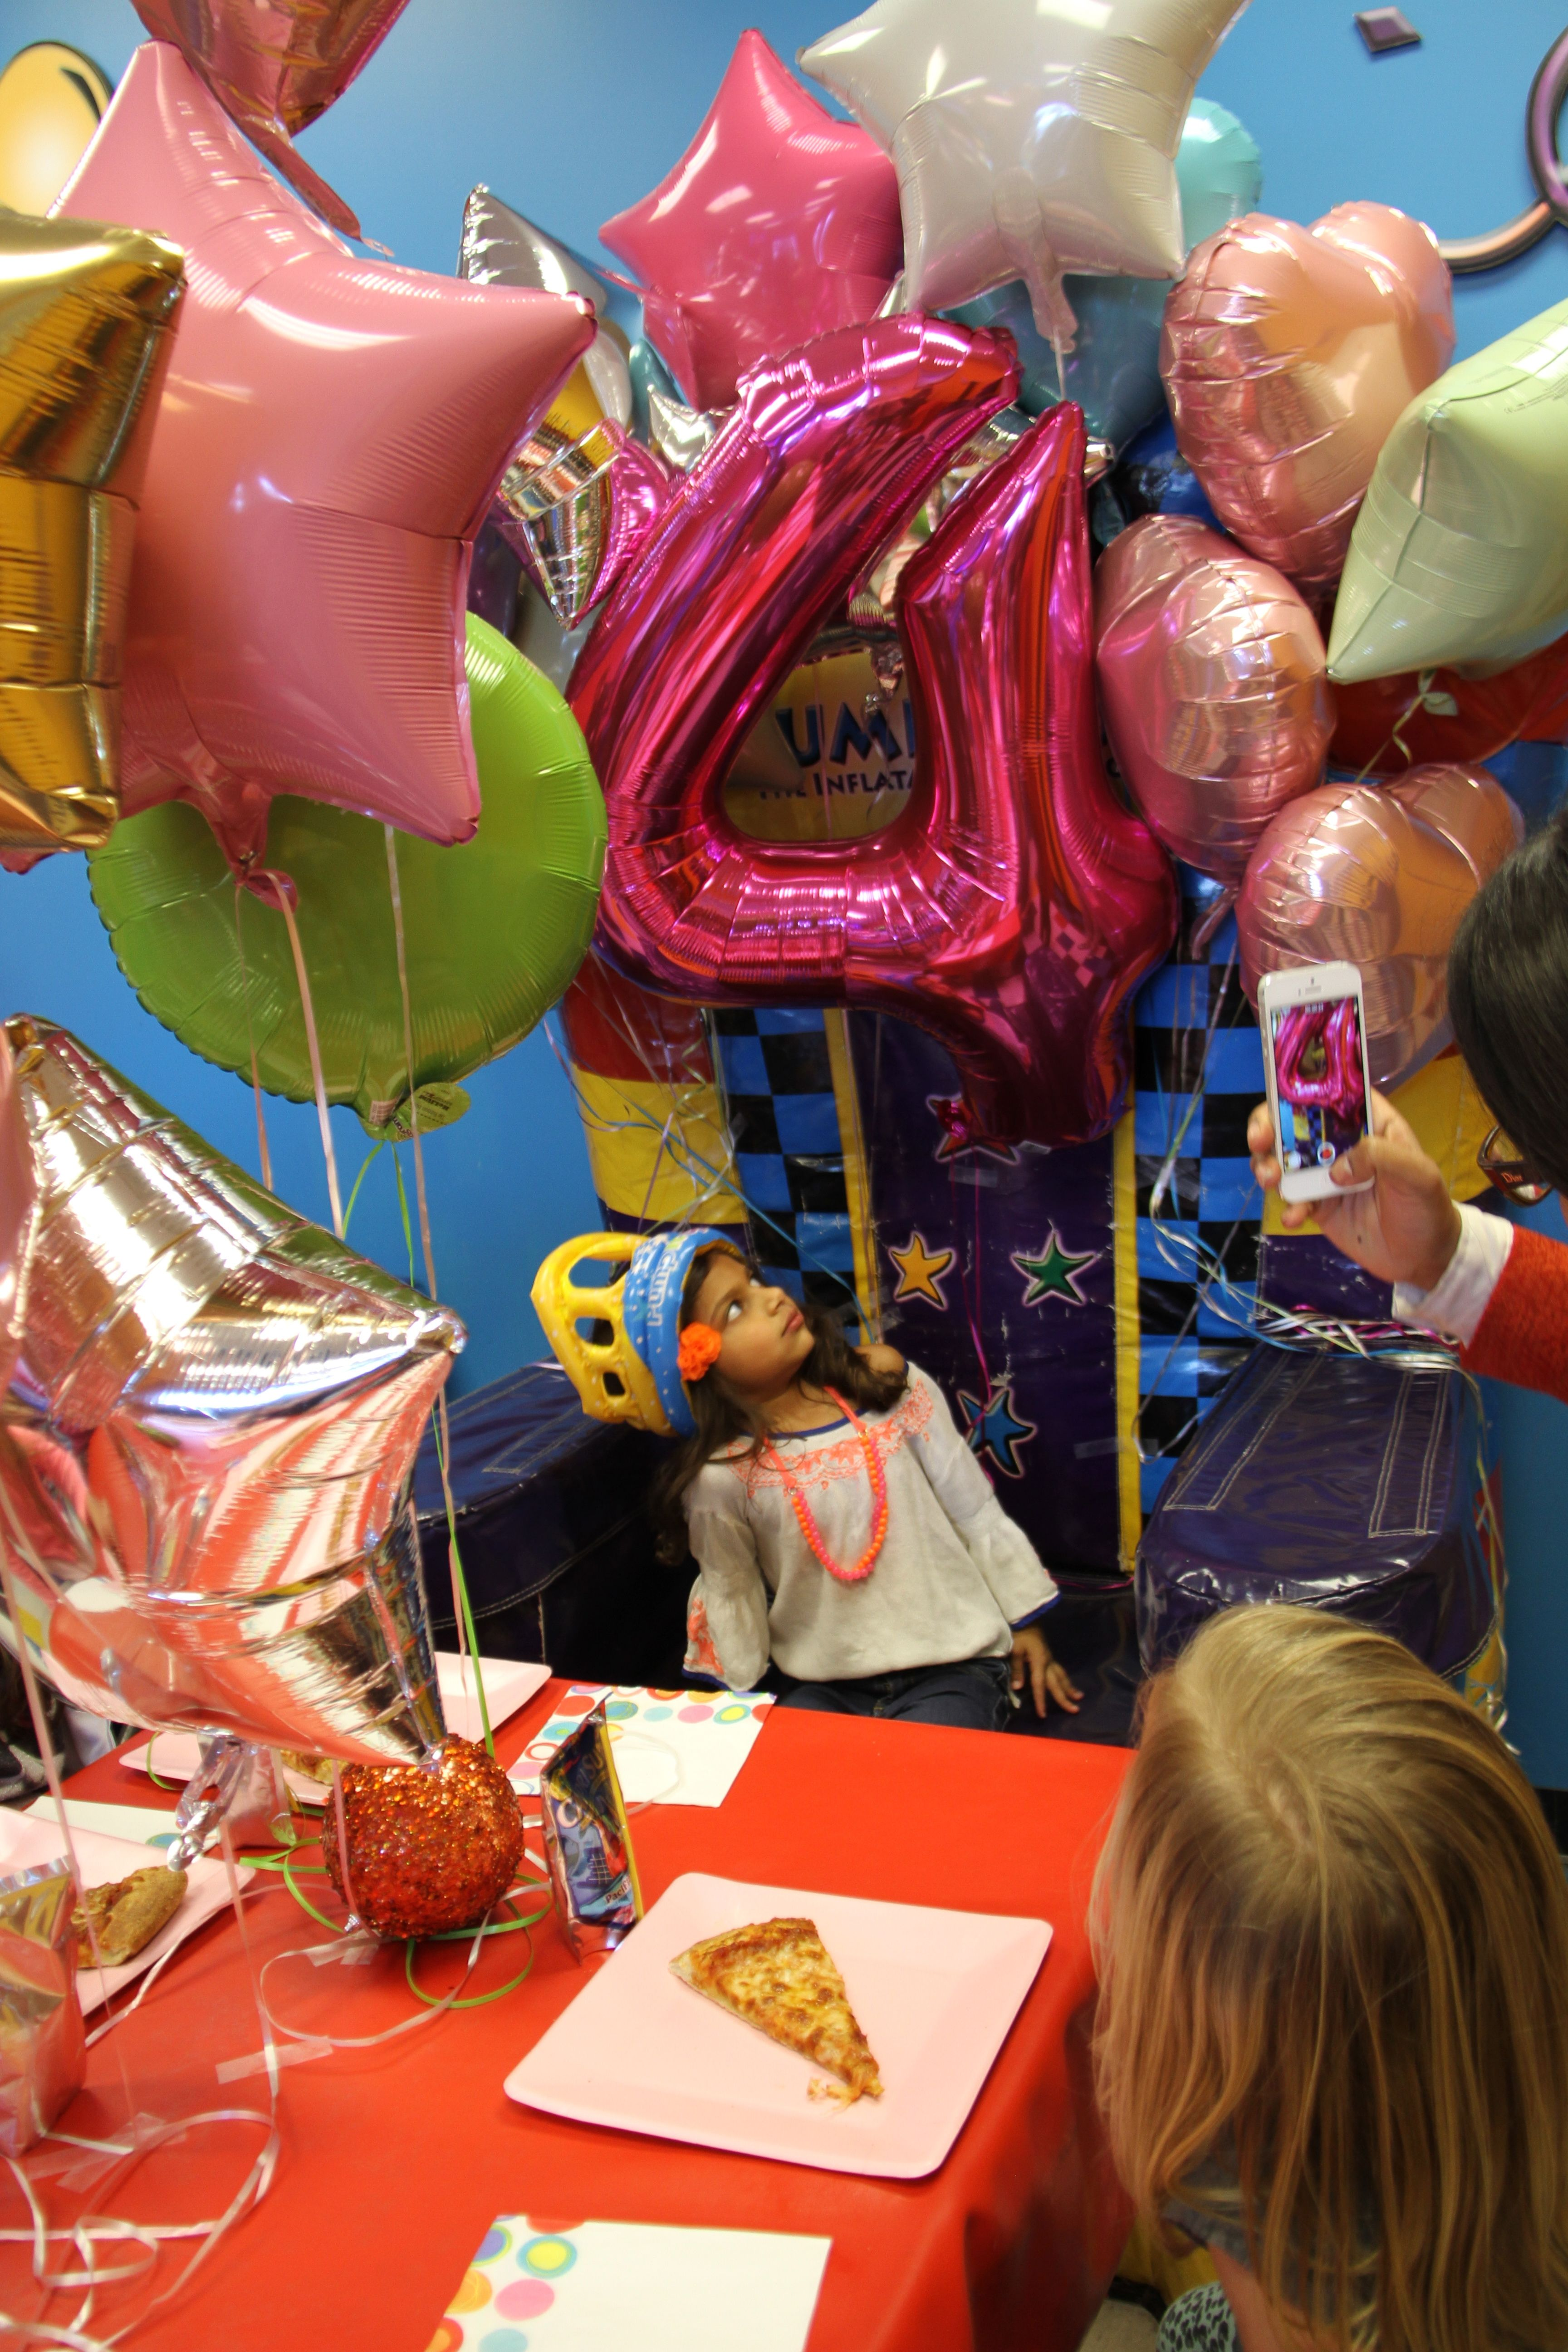 Personalized pump it up birthday throne! Foil balloons